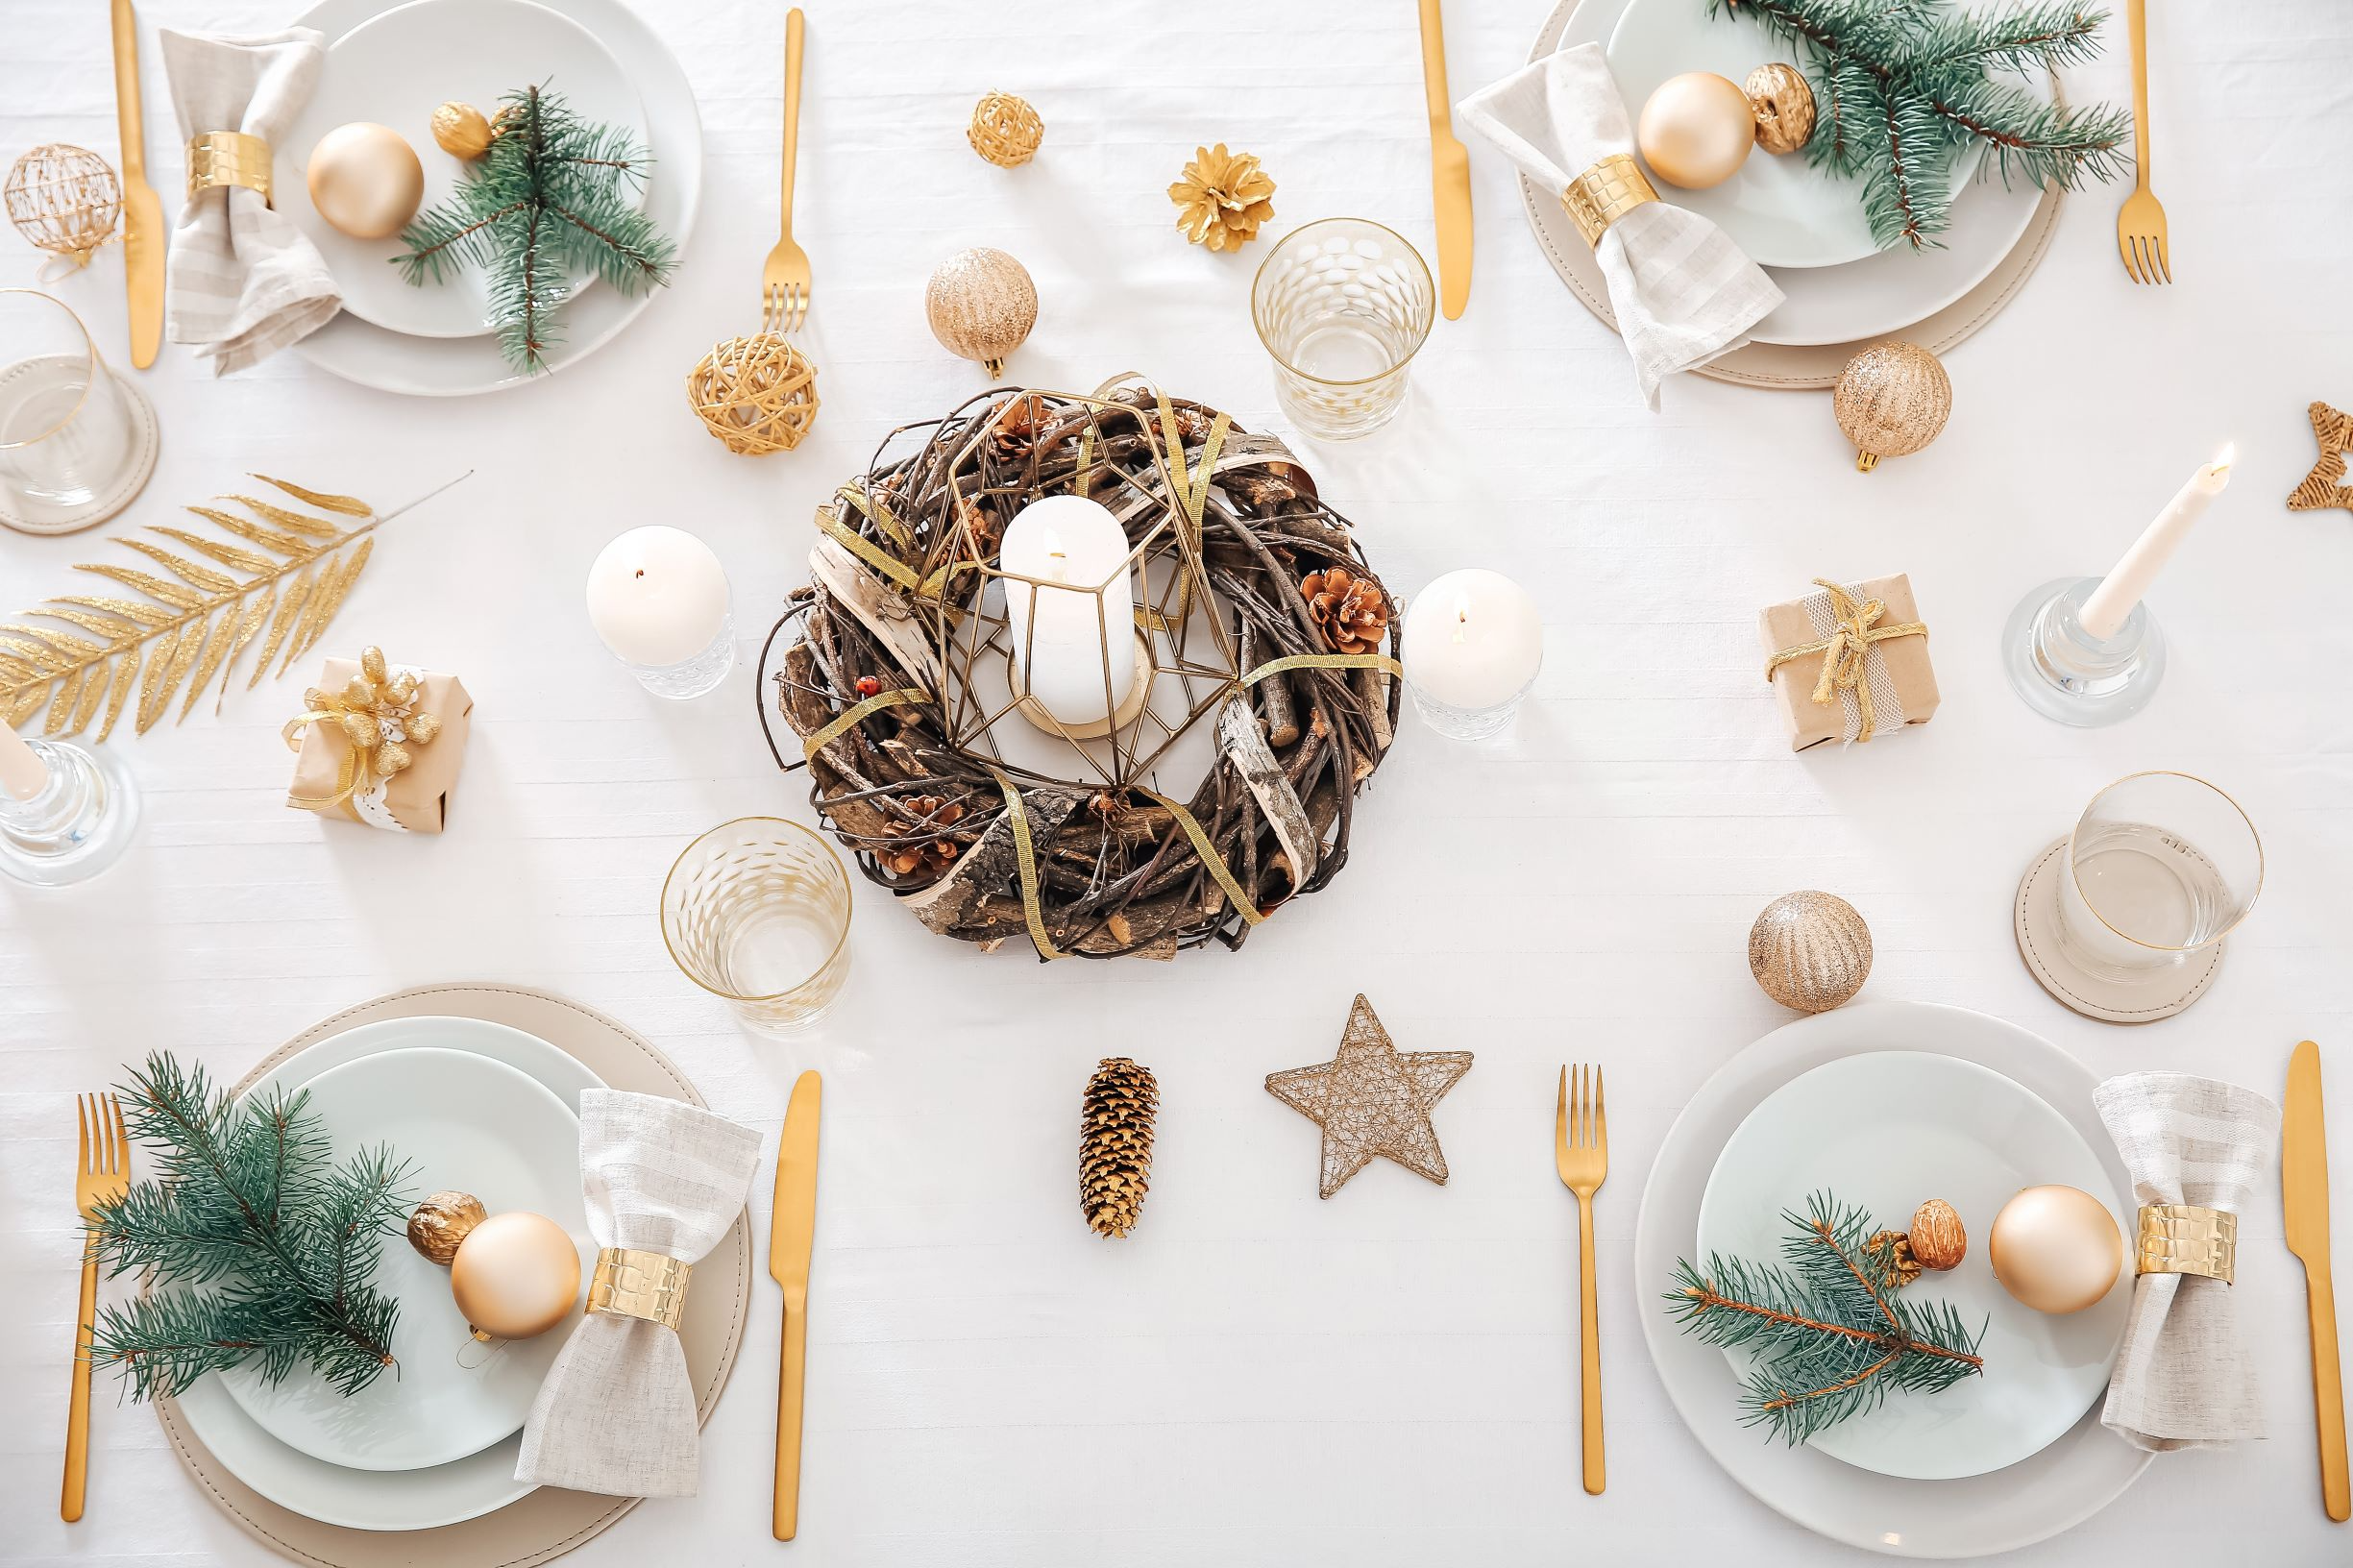 Christmas Table in rustic white and gold combination.